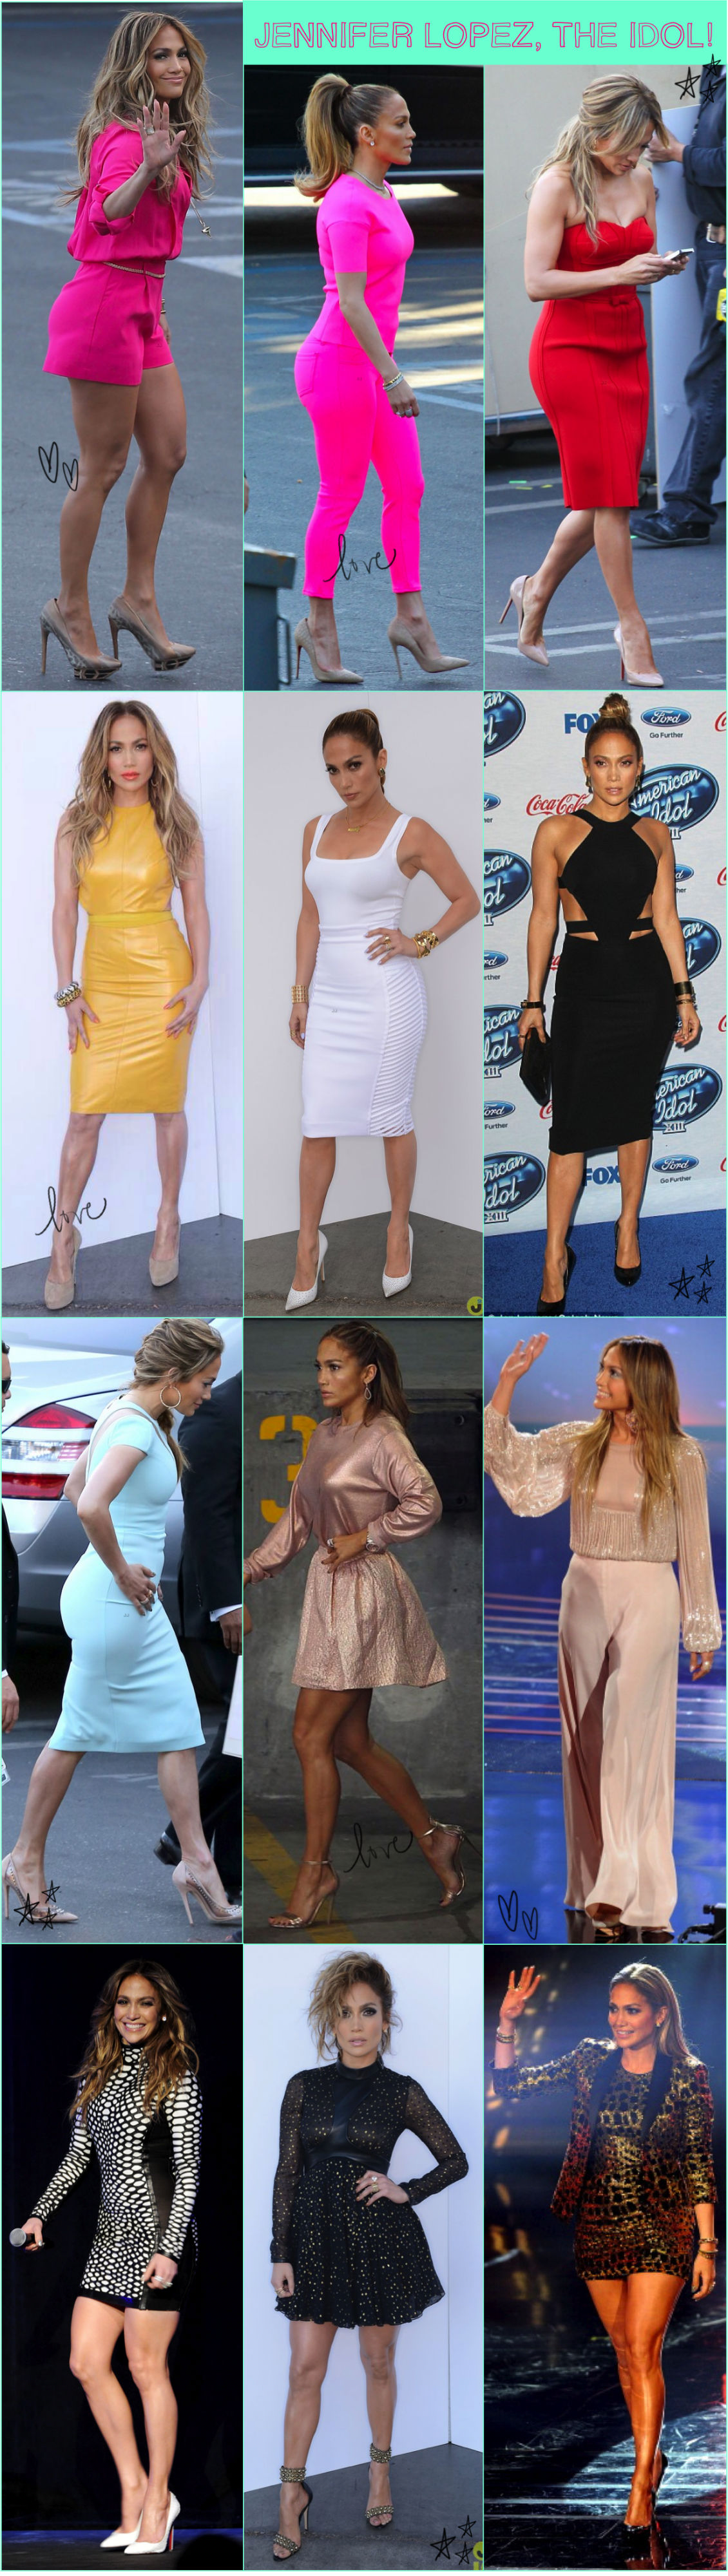 JLO AMERICAN IDOL LOOKS OUTFIT